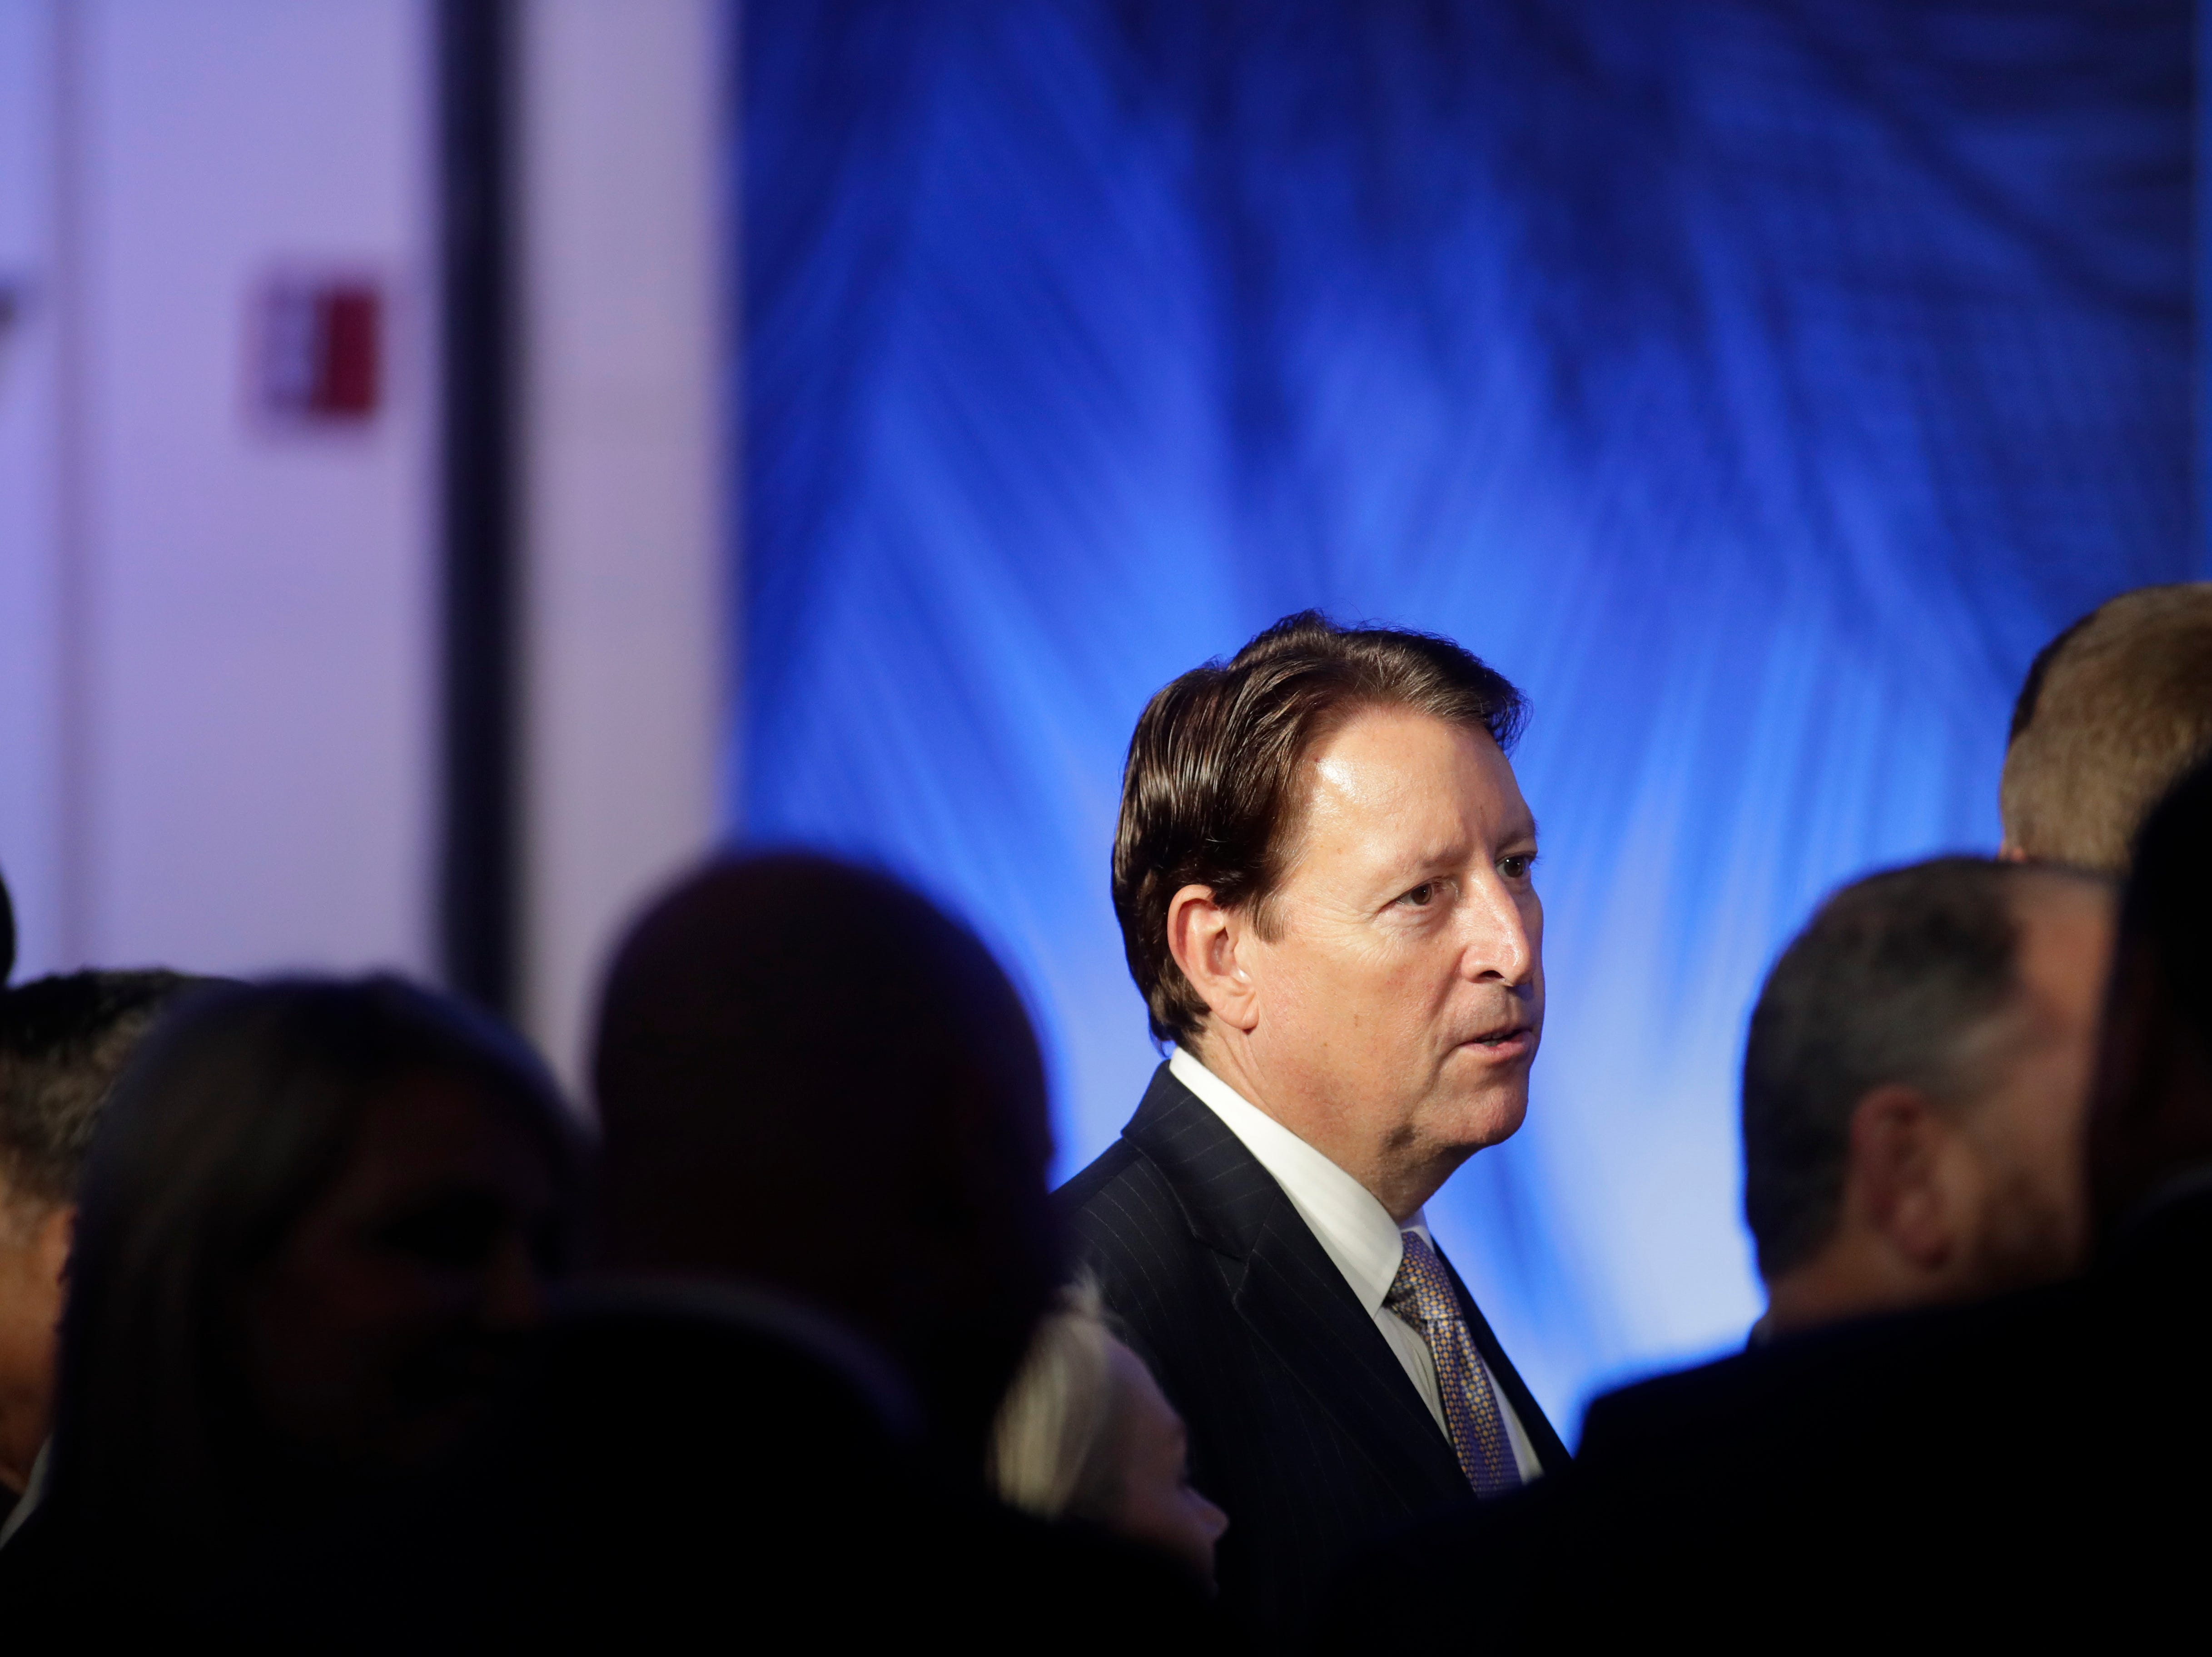 Senate President Bill Galvano talks with other guests during the Bold Vision for a Bright Future: Thought Leaders Luncheon in the University Center Club at Florida State University Monday, Jan. 7, 2019.